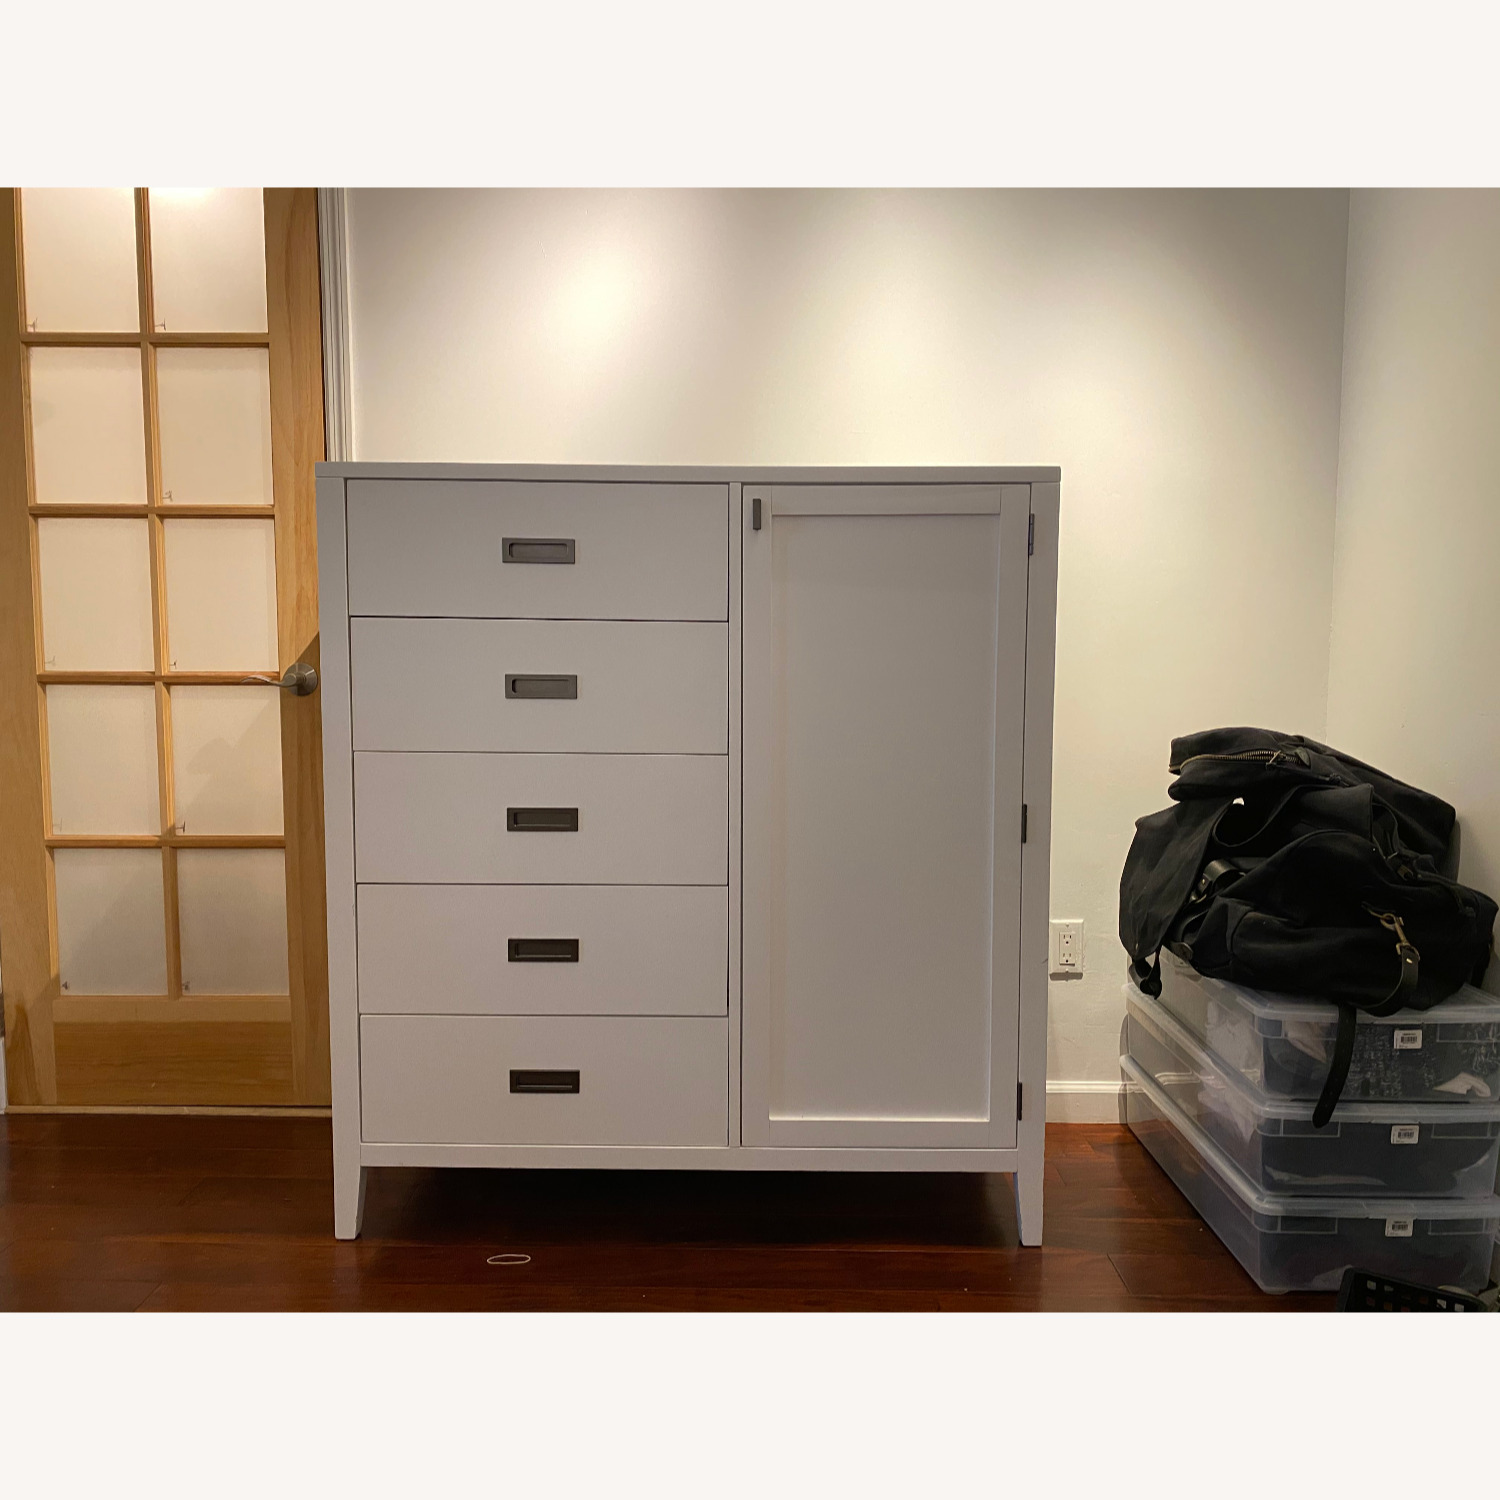 Crate and Barrel Arch Wardrobe / Dresser - image-1